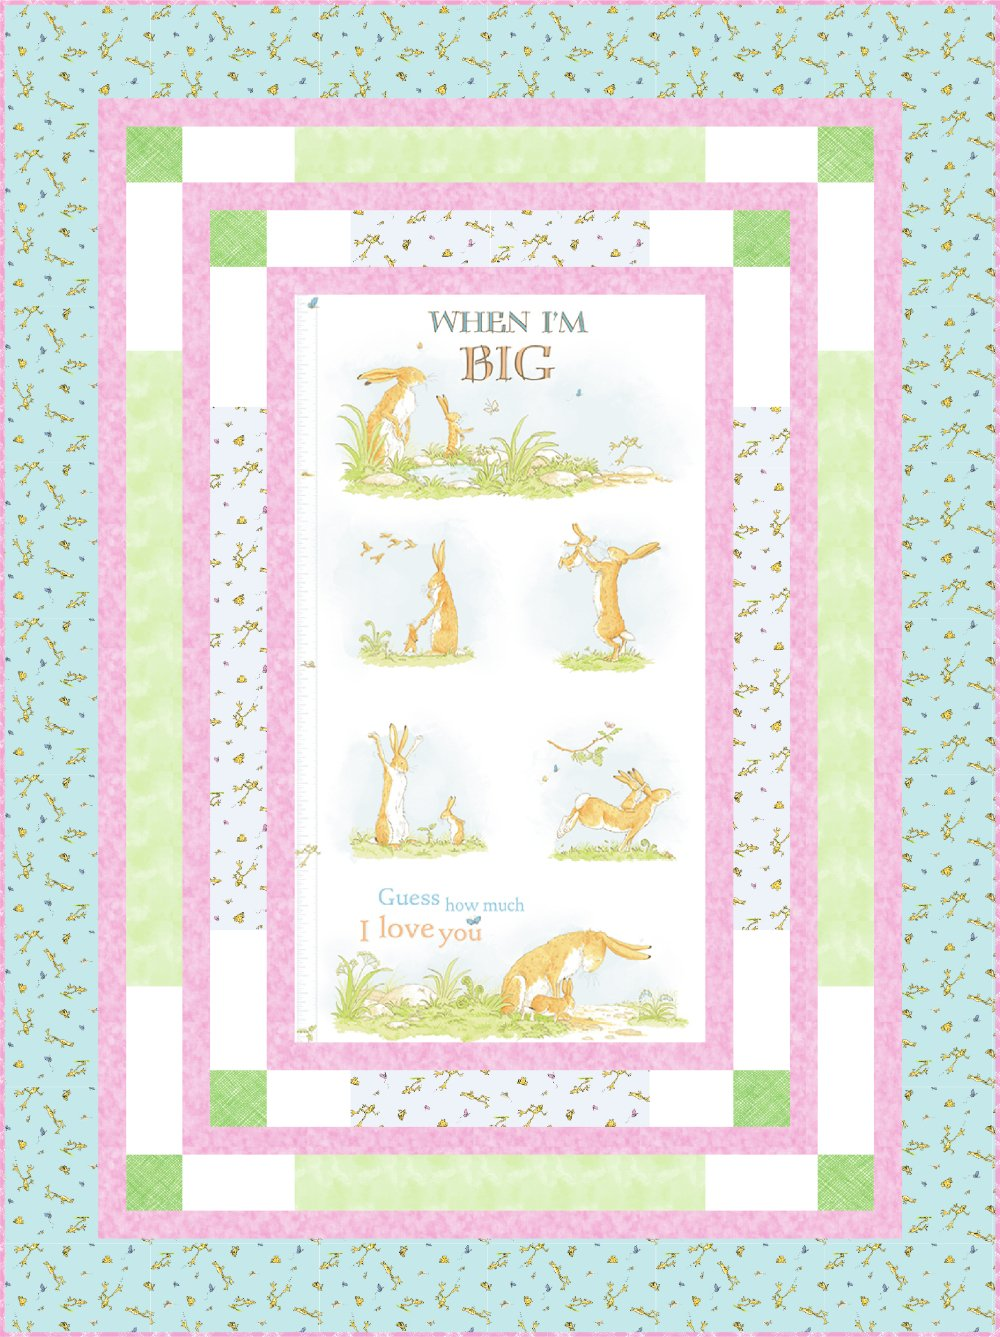 When I'm Big Panel Quilt Kit (53.5 x 71.5) - Teal